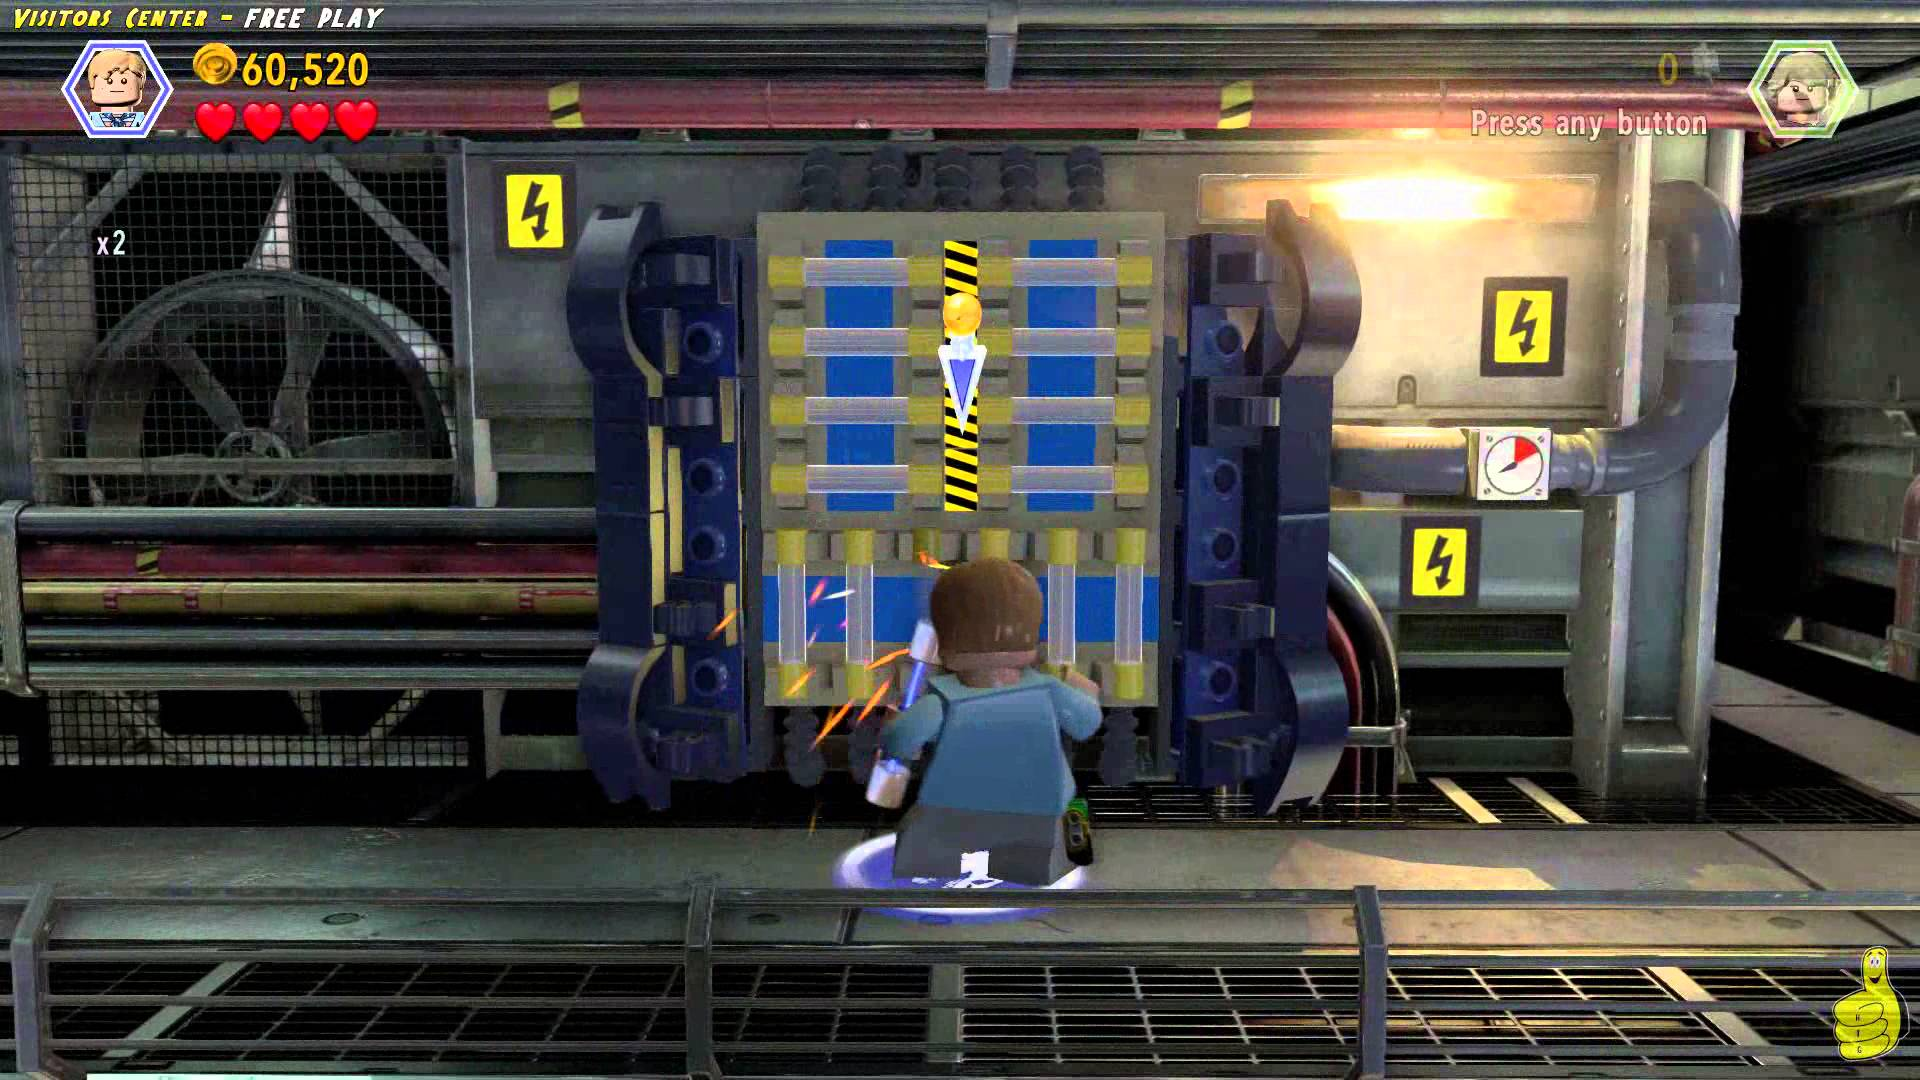 Lego Jurassic World: Level 5 Visitors Center FREE PLAY (All Collectibles) – HTG